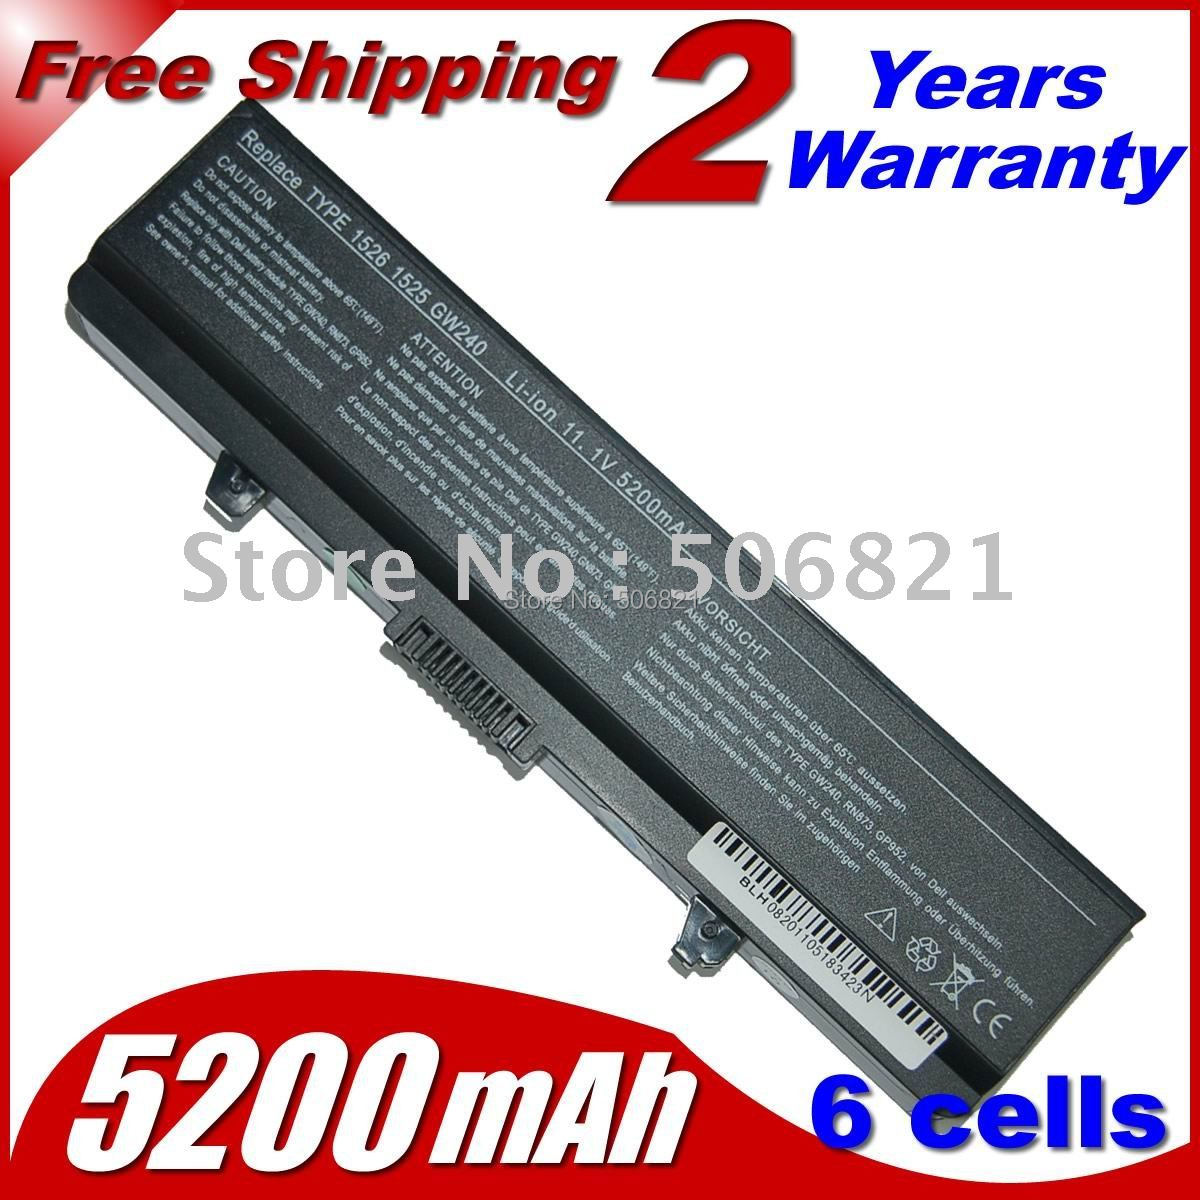 Replacement Laptop Battery For Dell Inspiron 1525 1526 1545 1440 1750 312-0625 C601H D608H GW240 XR693 M911G GP952(China (Mainland))